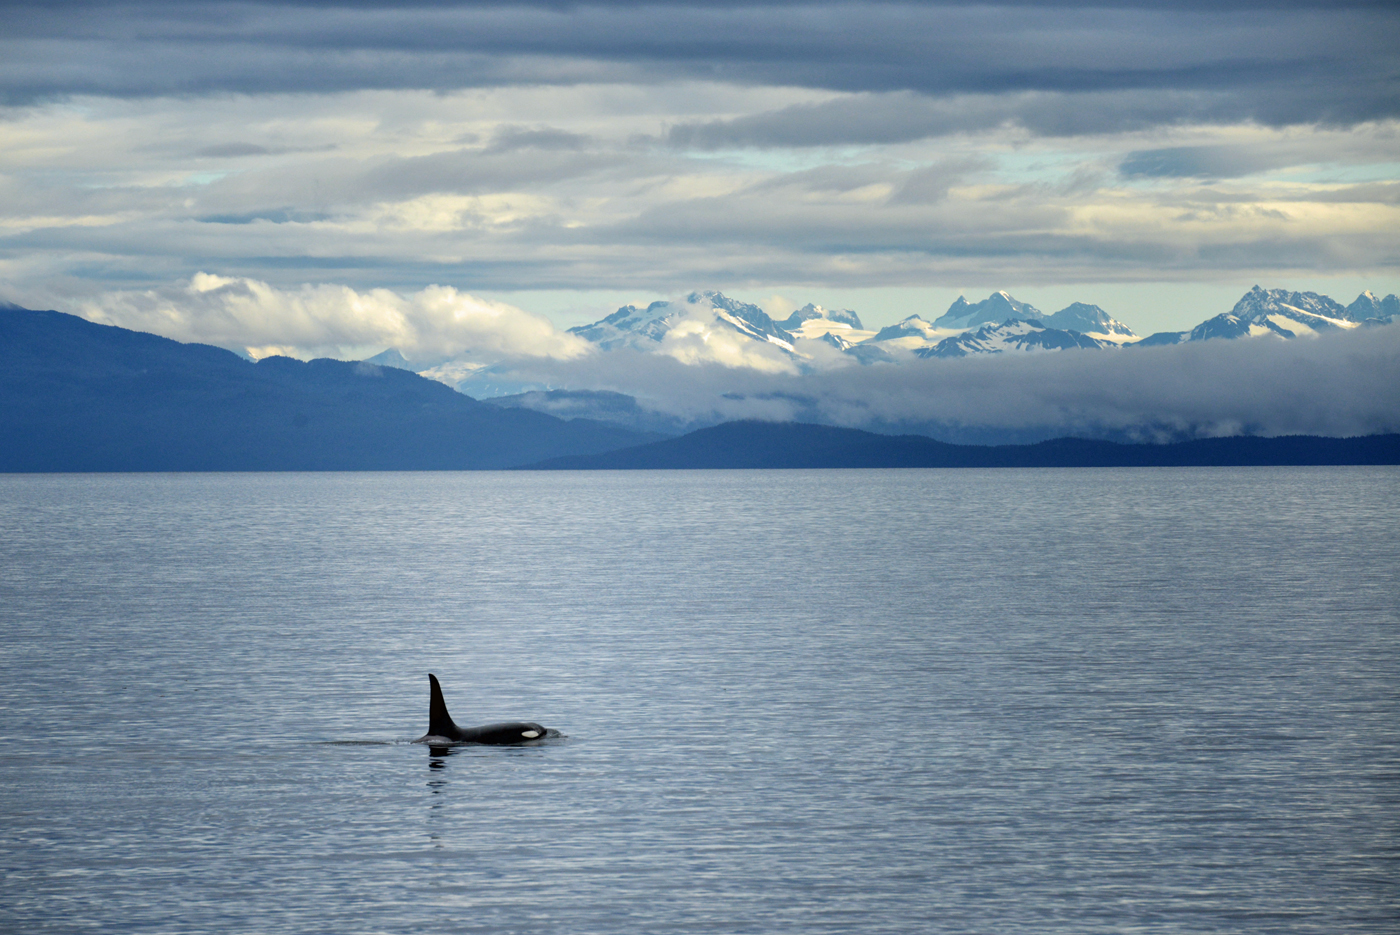 A killer whale comes up for air with the spectacular Mt. Fairweather range in the background. The Fairweathers rise up over 15,000 feet in just a few miles from the coastline in Glacier Bay National Park!